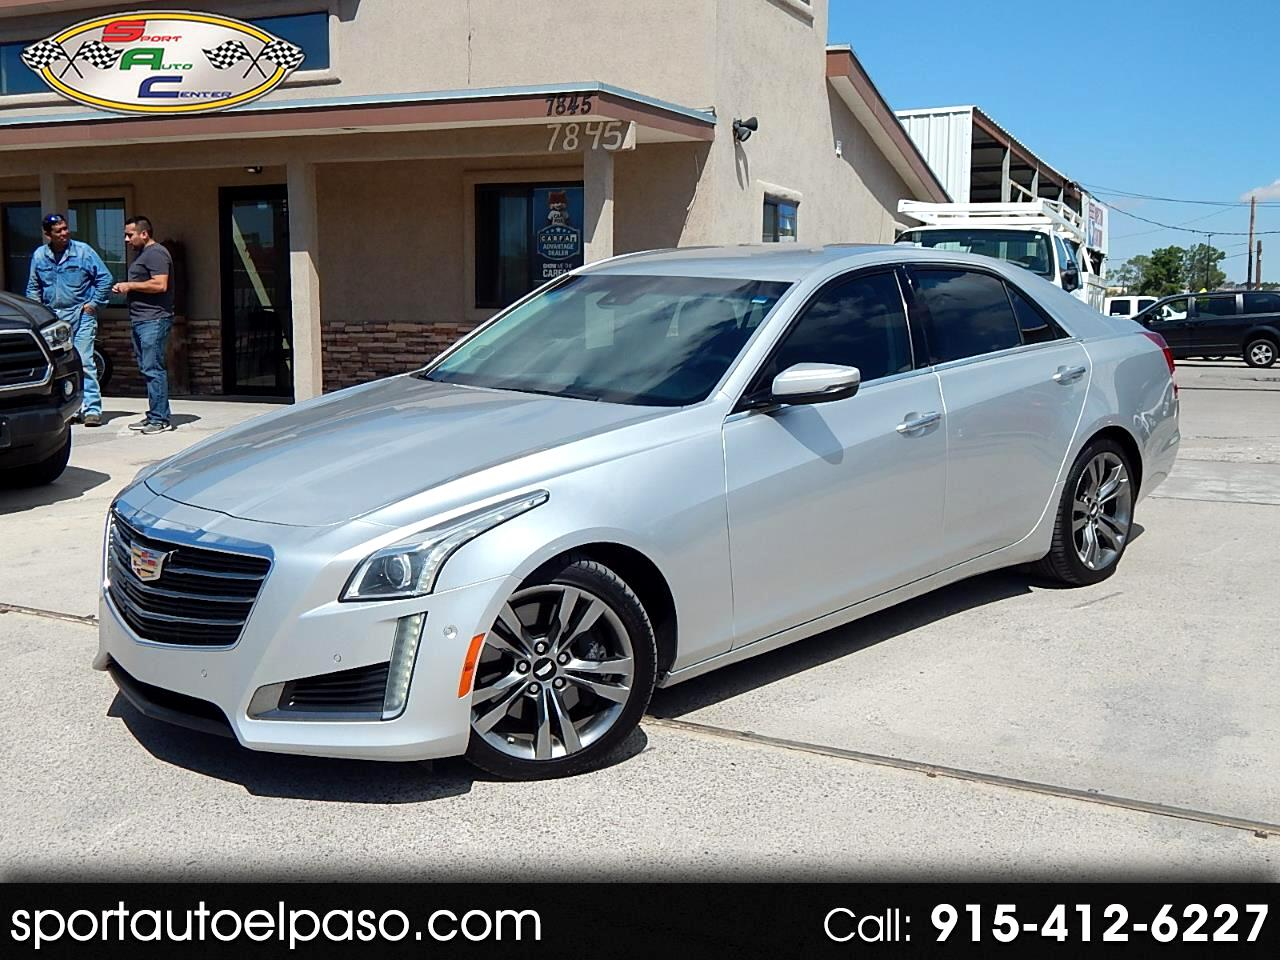 2015 Cadillac CTS 3.6L Twin Turbo Vsport RWD